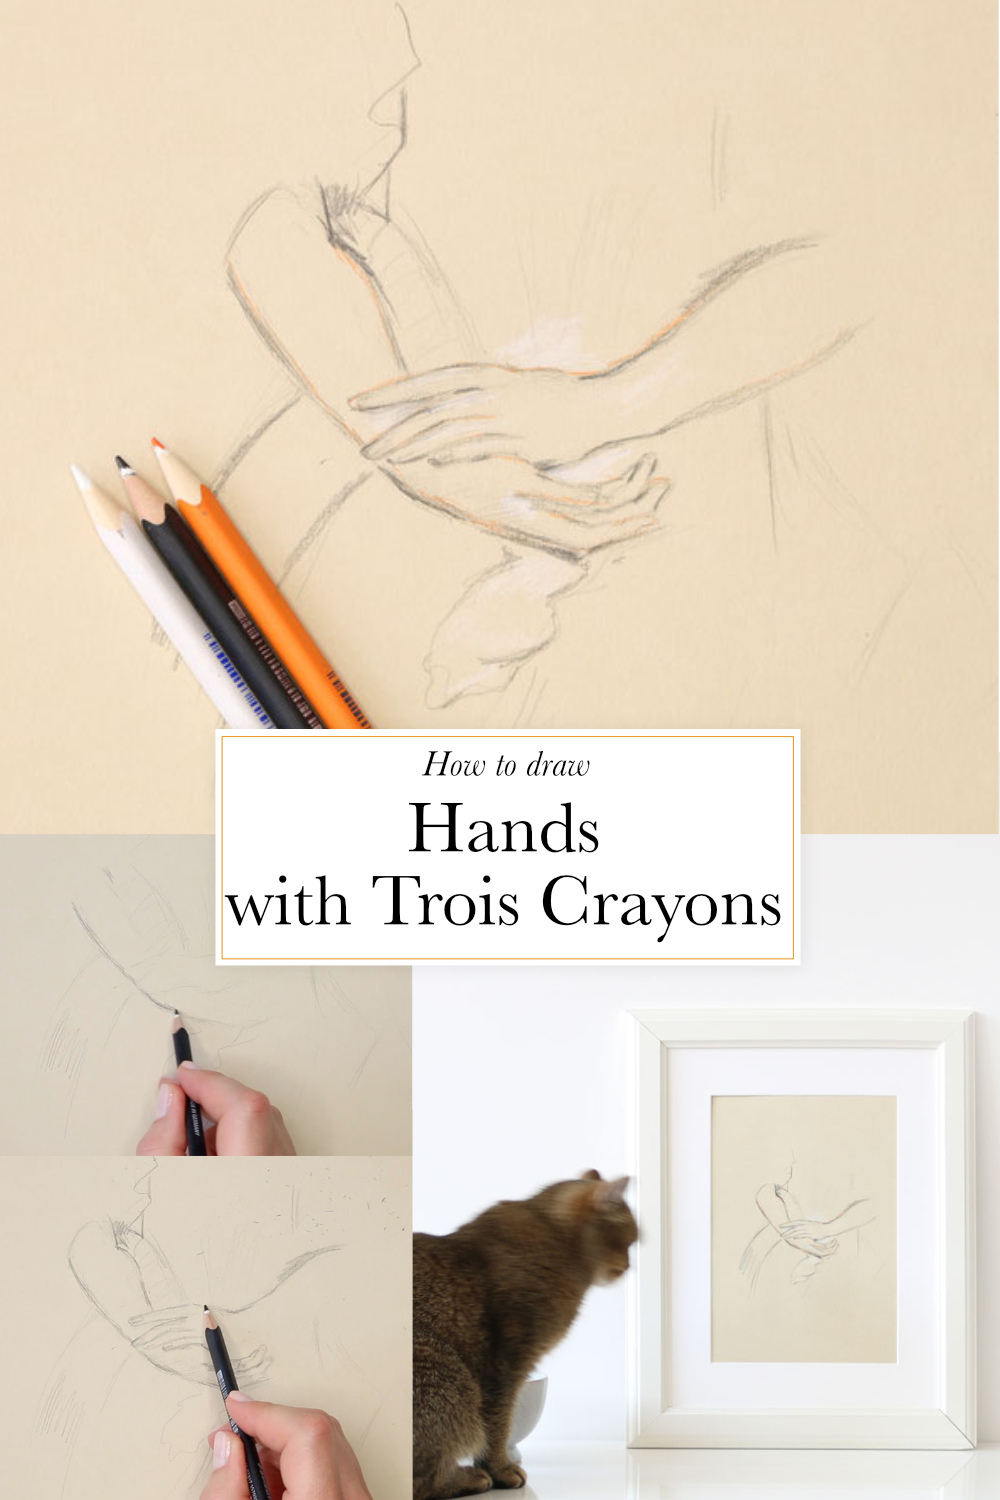 How to draw hands with the aux trois crayons technique |  by The Daily Atelier